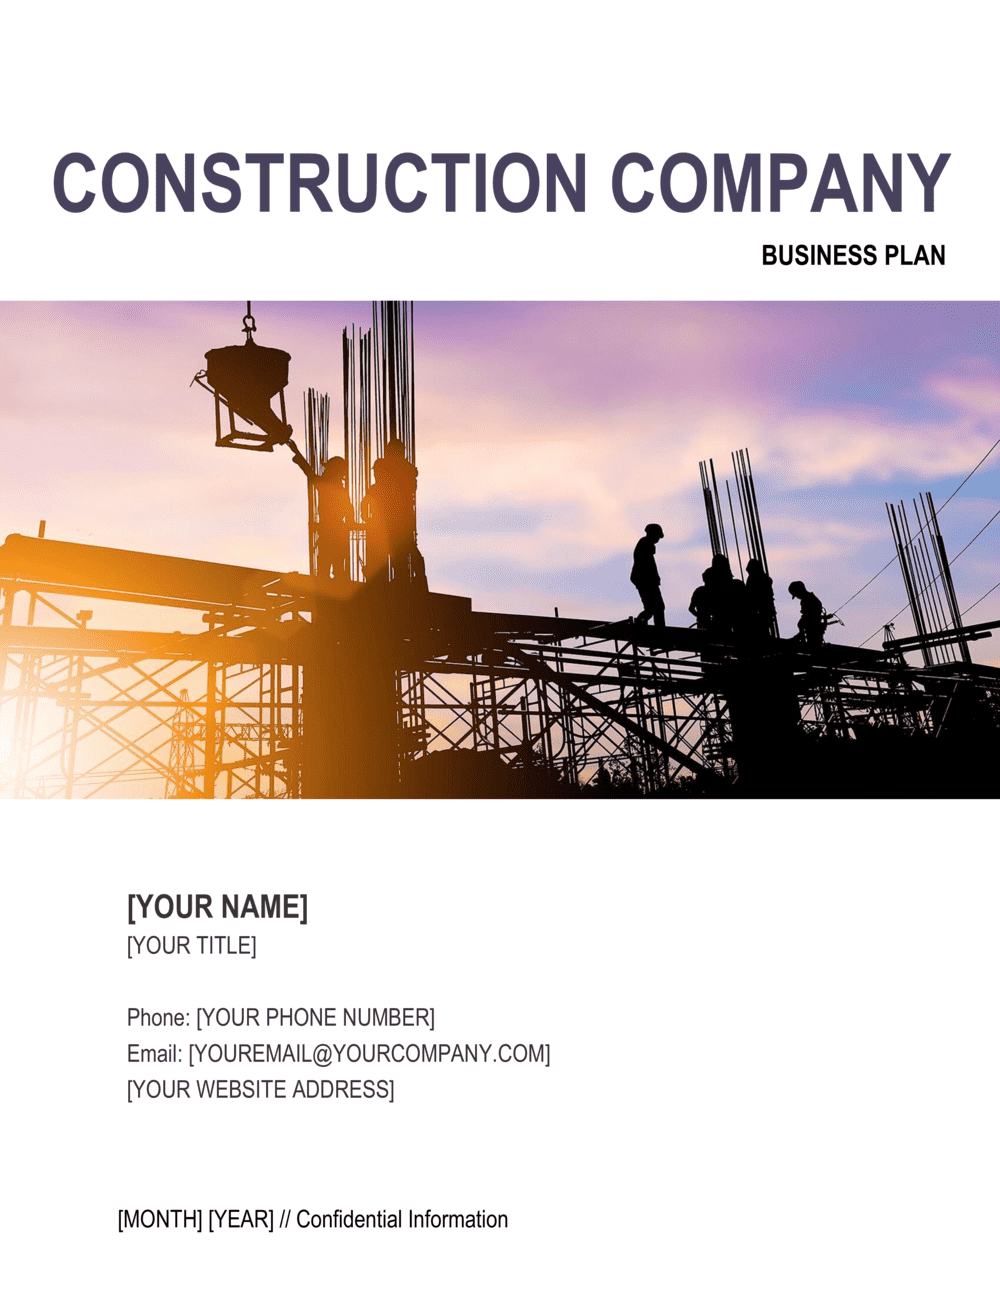 Business-in-a-Box's Construction Company Business Plan 3 Template